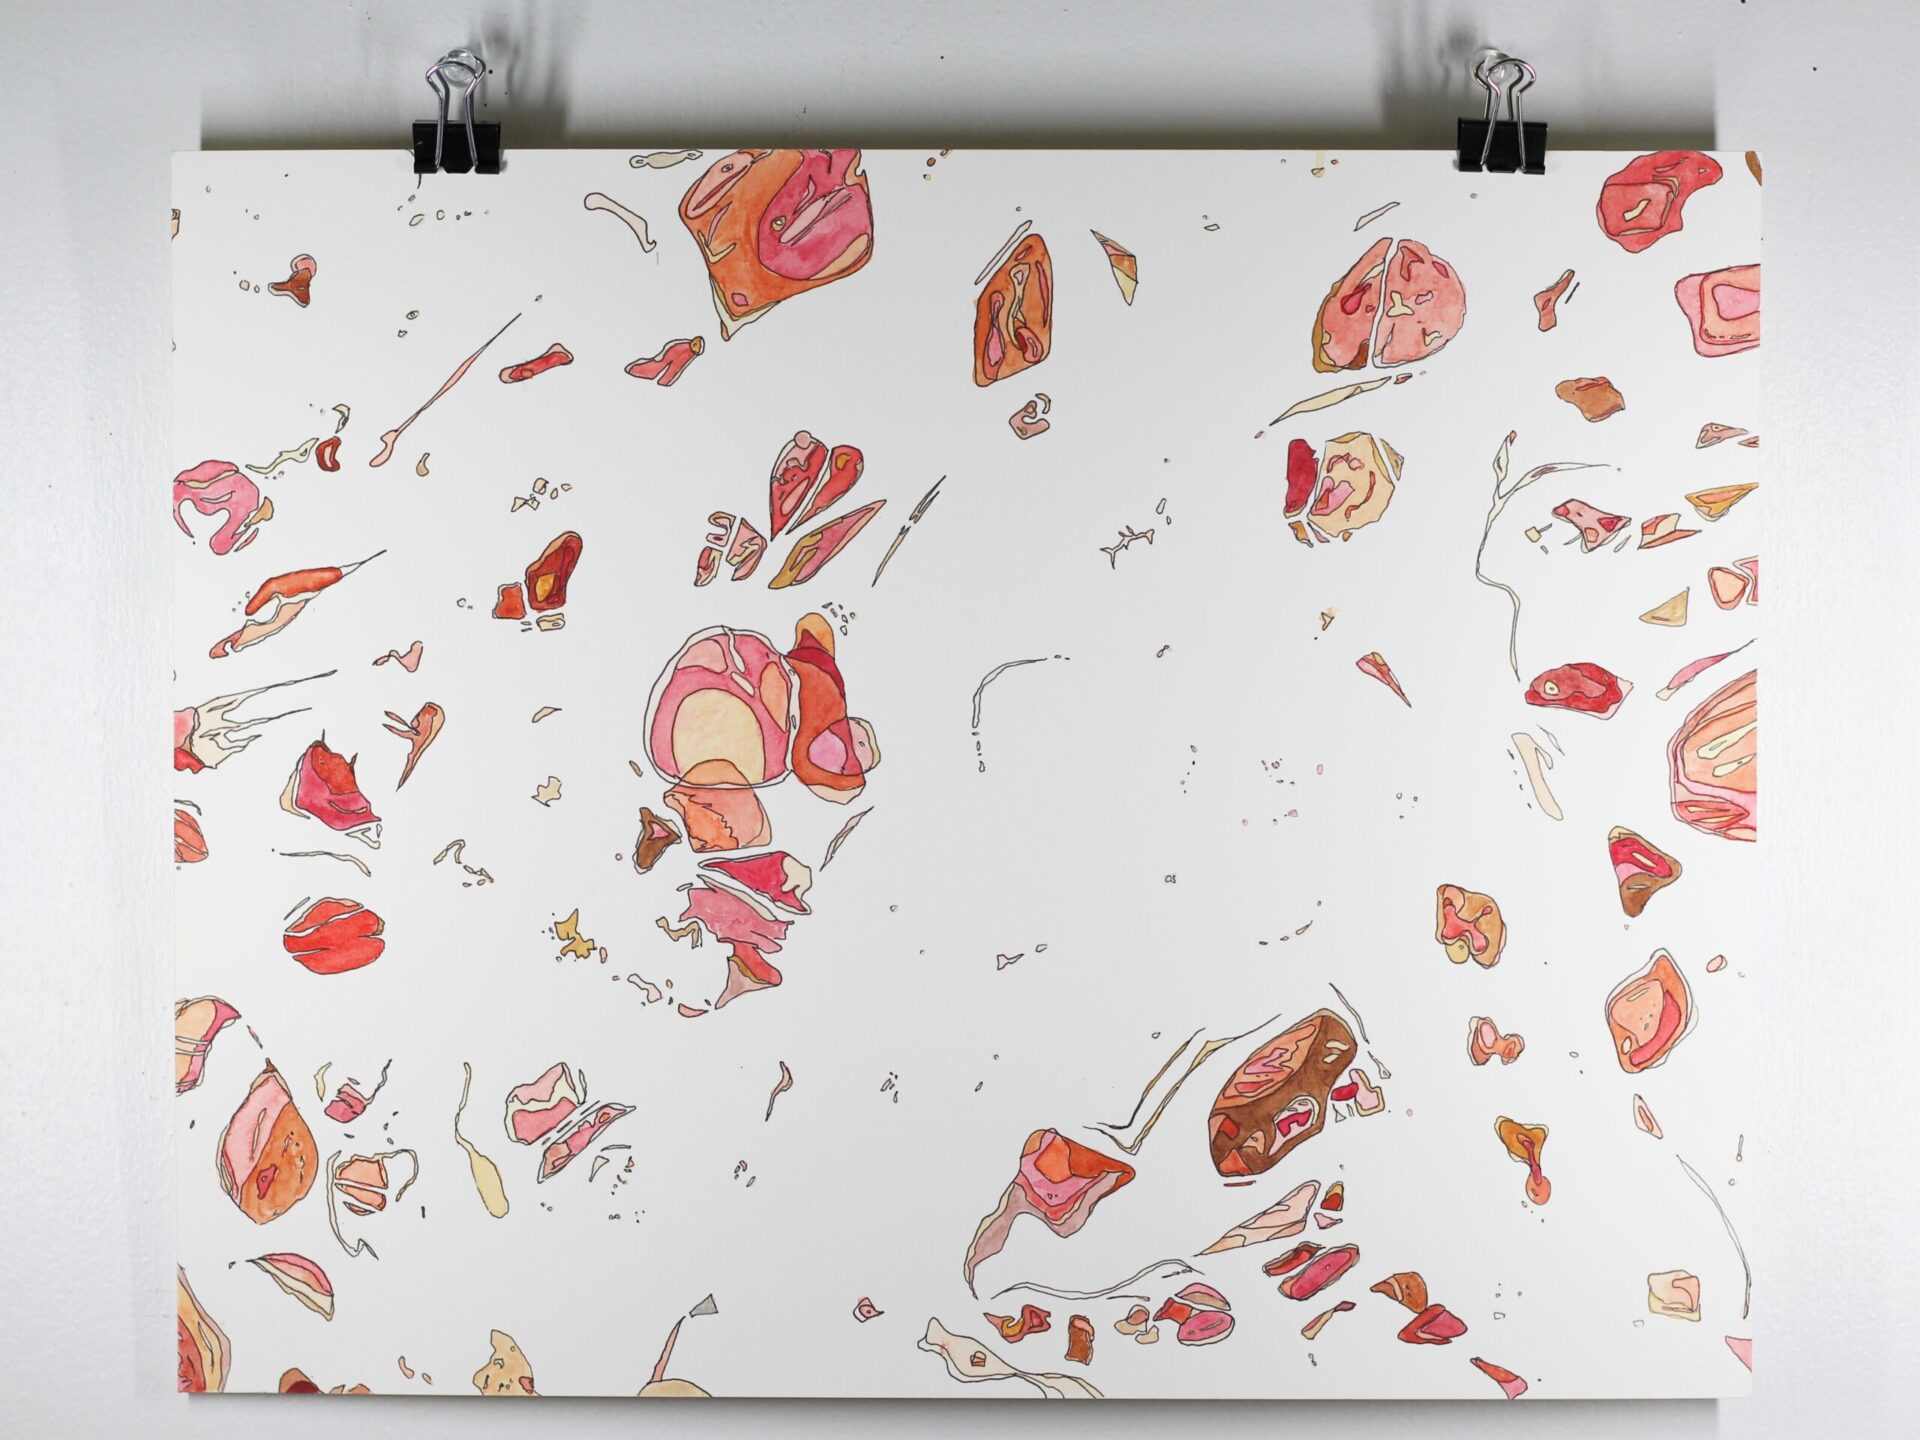 """Angela Faustina, POMEGRANATE segments painting, 2020. Ink and watercolor paint on bristol board paper, 14"""" by 11""""."""